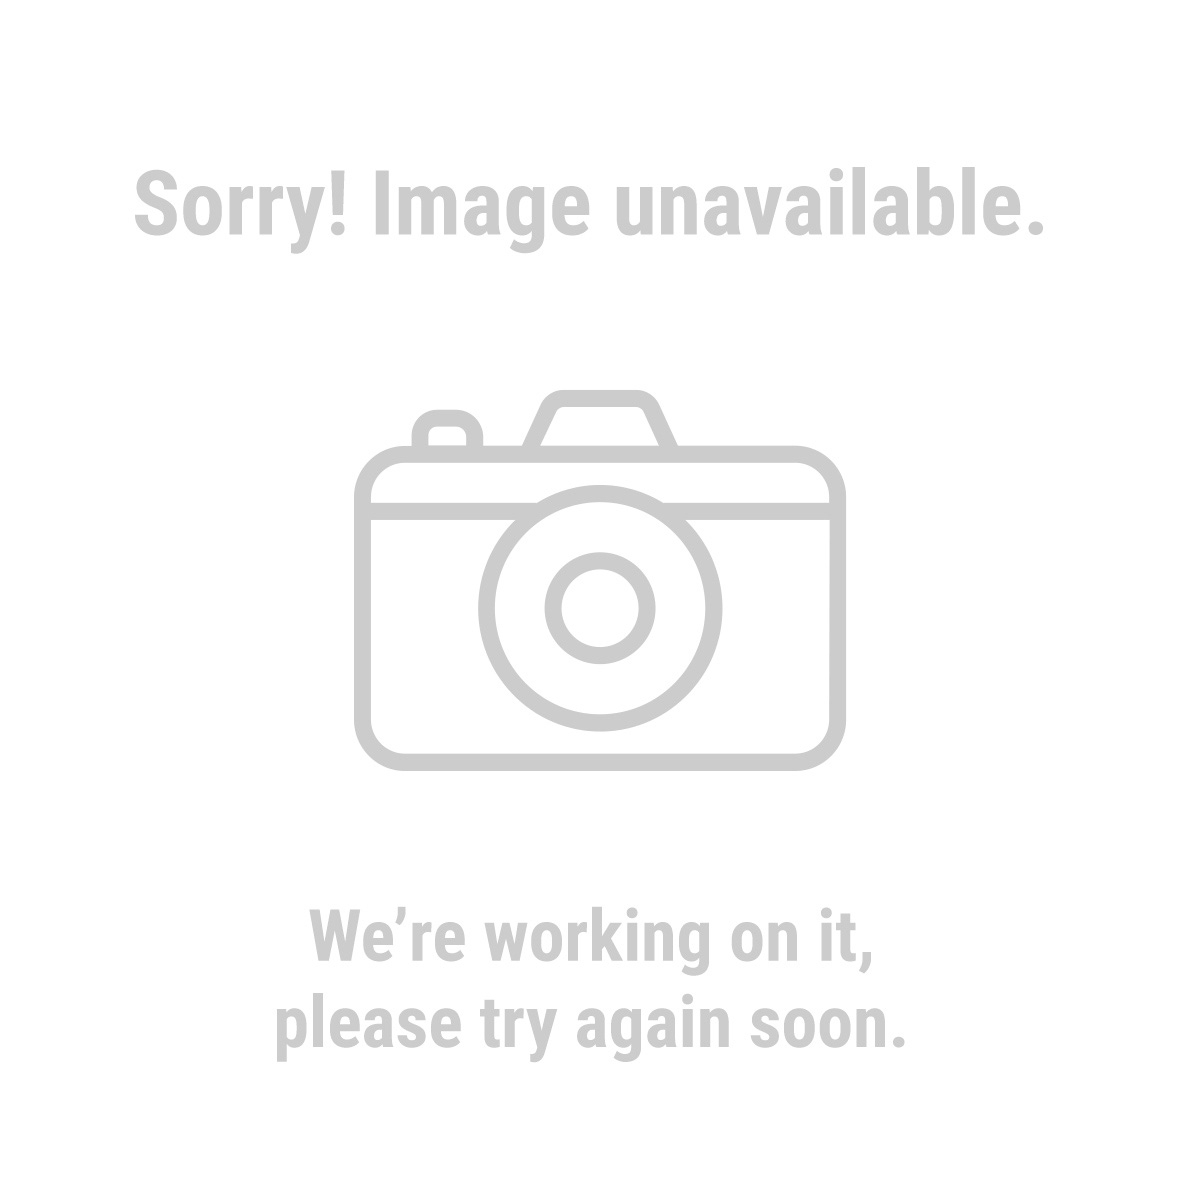 Haul-Master 66260 Hitch Mount Vise Plate